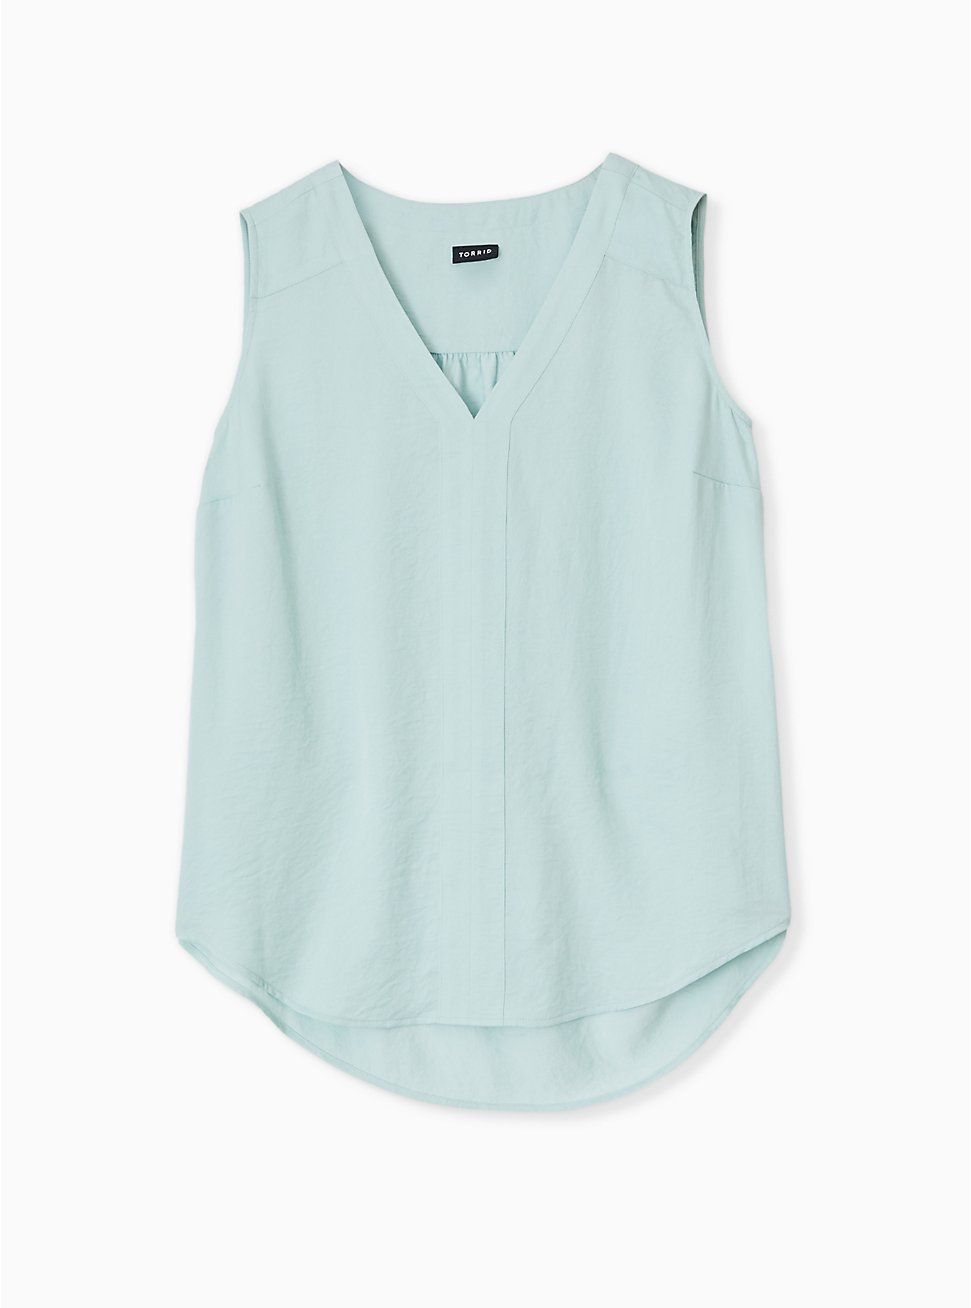 Plus Size Mint Blue Textured Satin Pullover Tank , HARBOR GRAY, hi-res